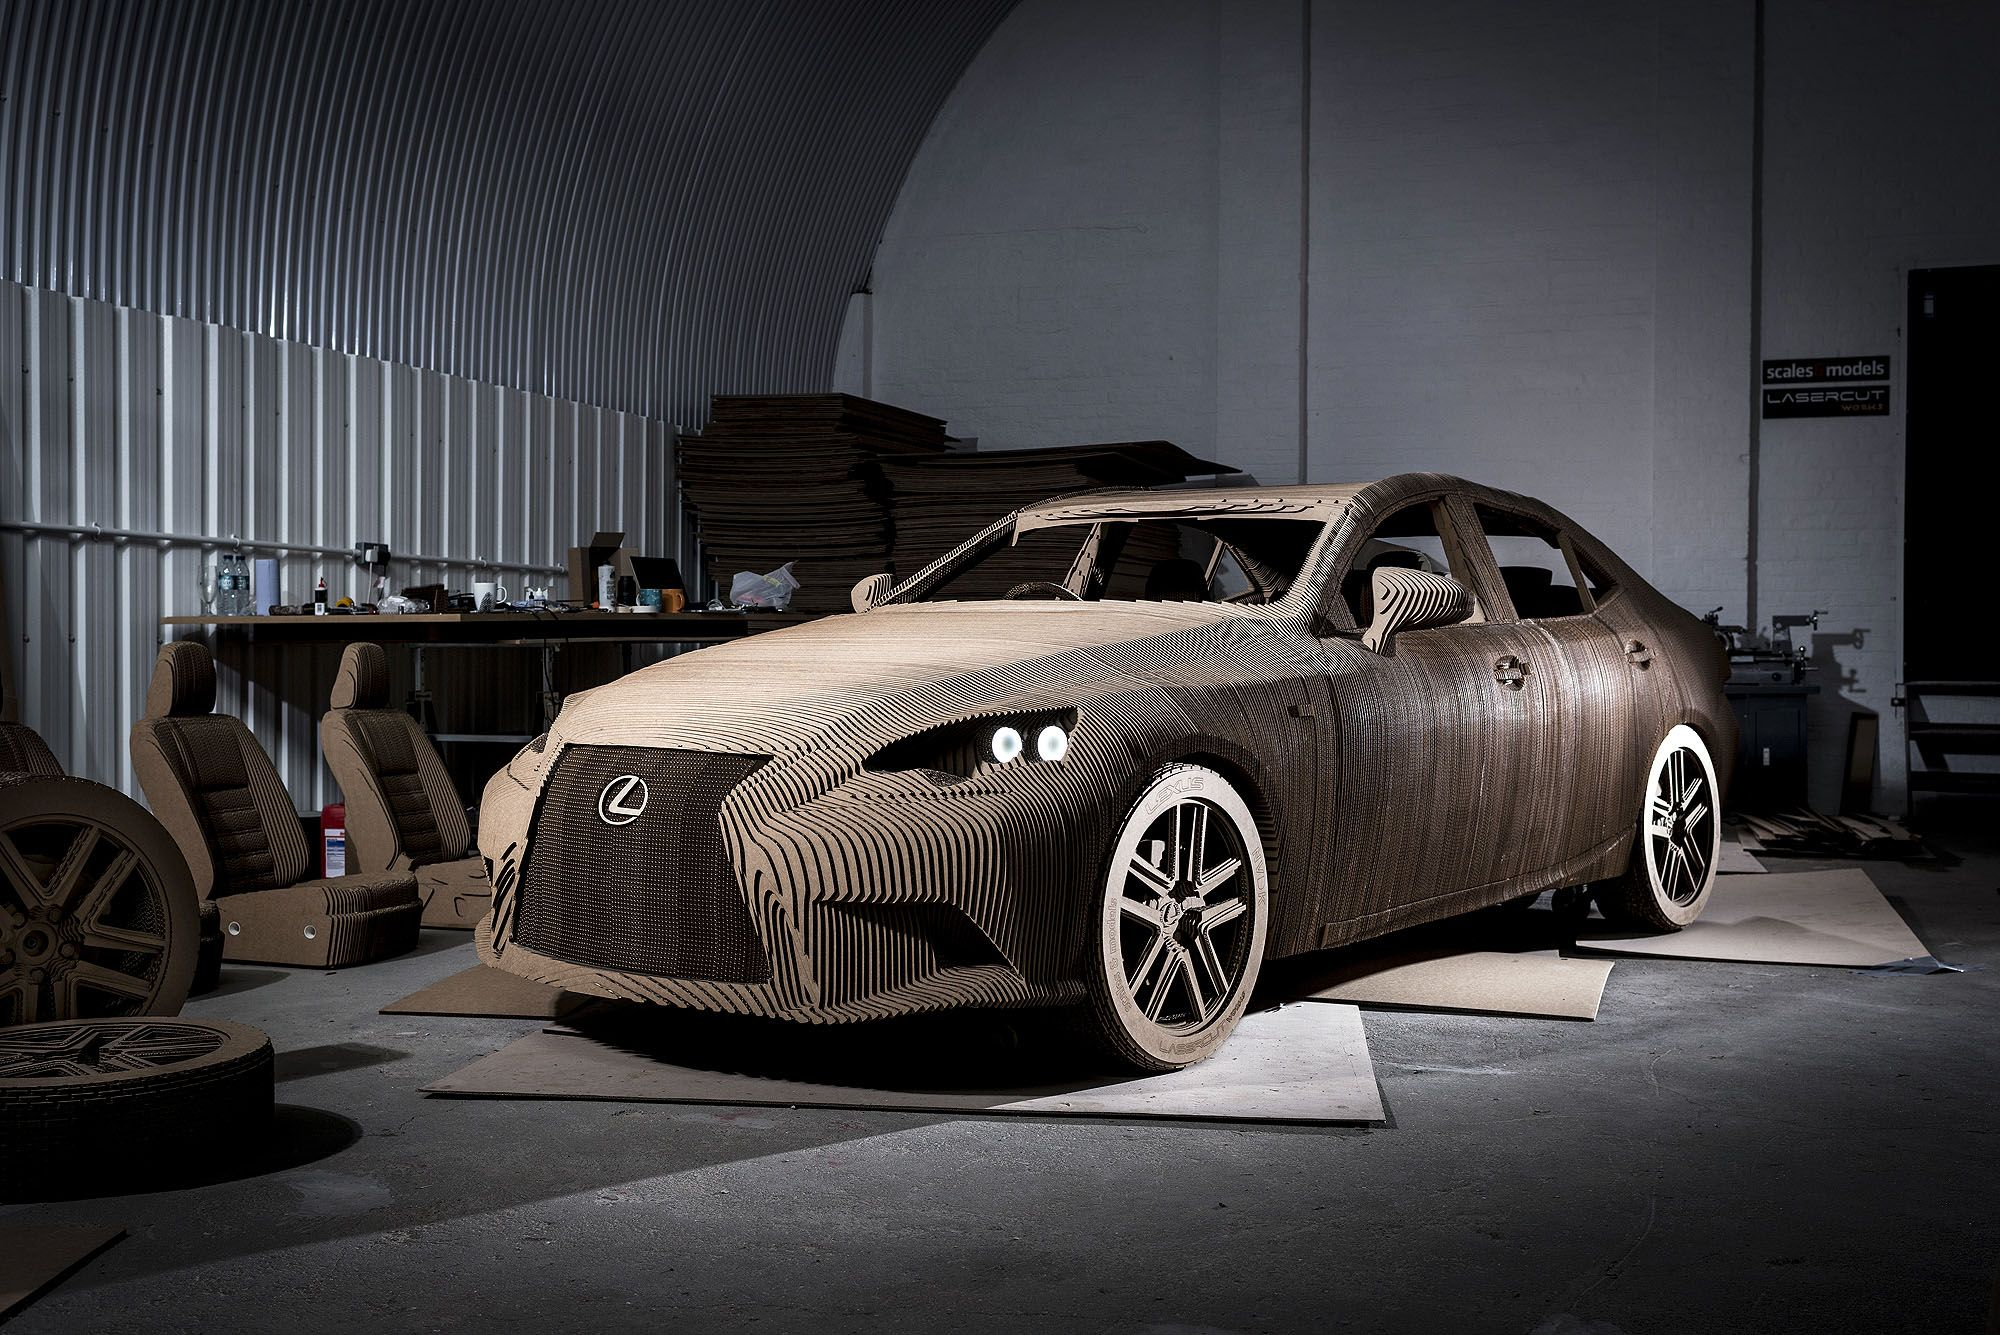 Comprised of some 1700 individually shaped pieces of cardboard, this origami-inspired car is a faithful replica of the #LexusIS saloon, and is produced as a celebration of the human craftsmanship skills that go into every car #Lexus makes. #CreatingAmazing. #Design #Art #Technology #Craftsmanship #Origami #Sculpture #OrigamiCar